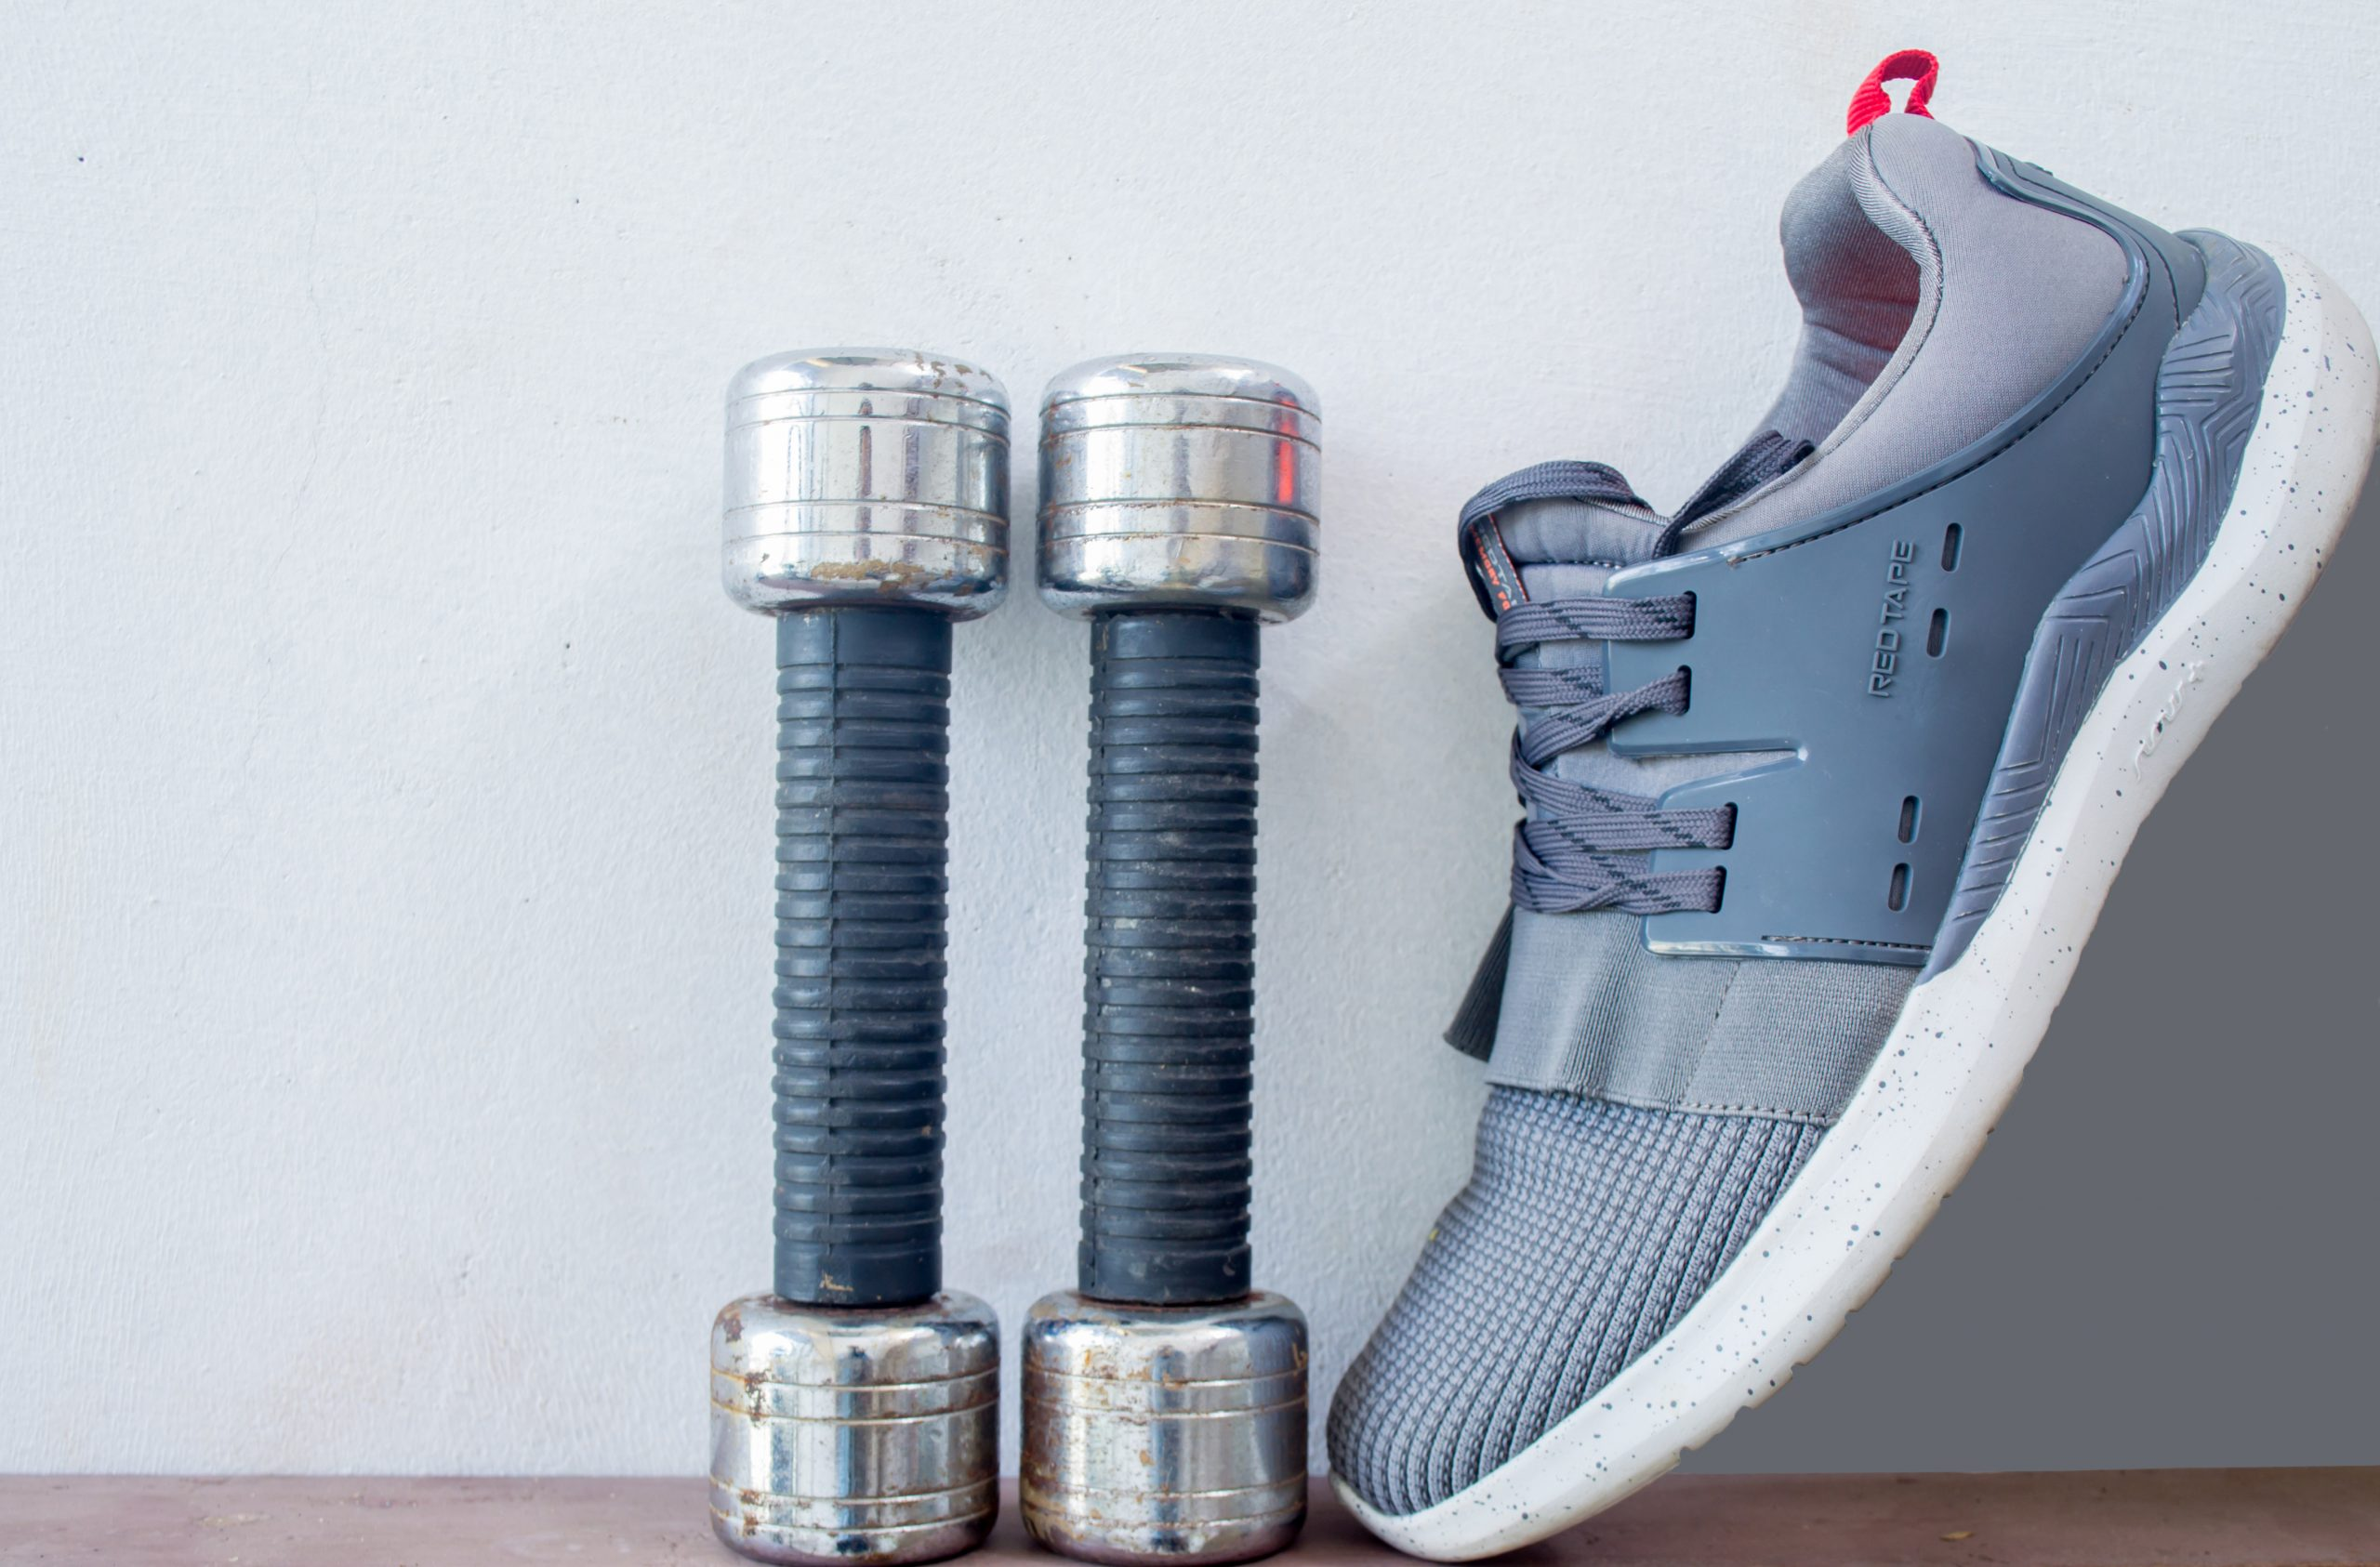 Dumbbells and shoe